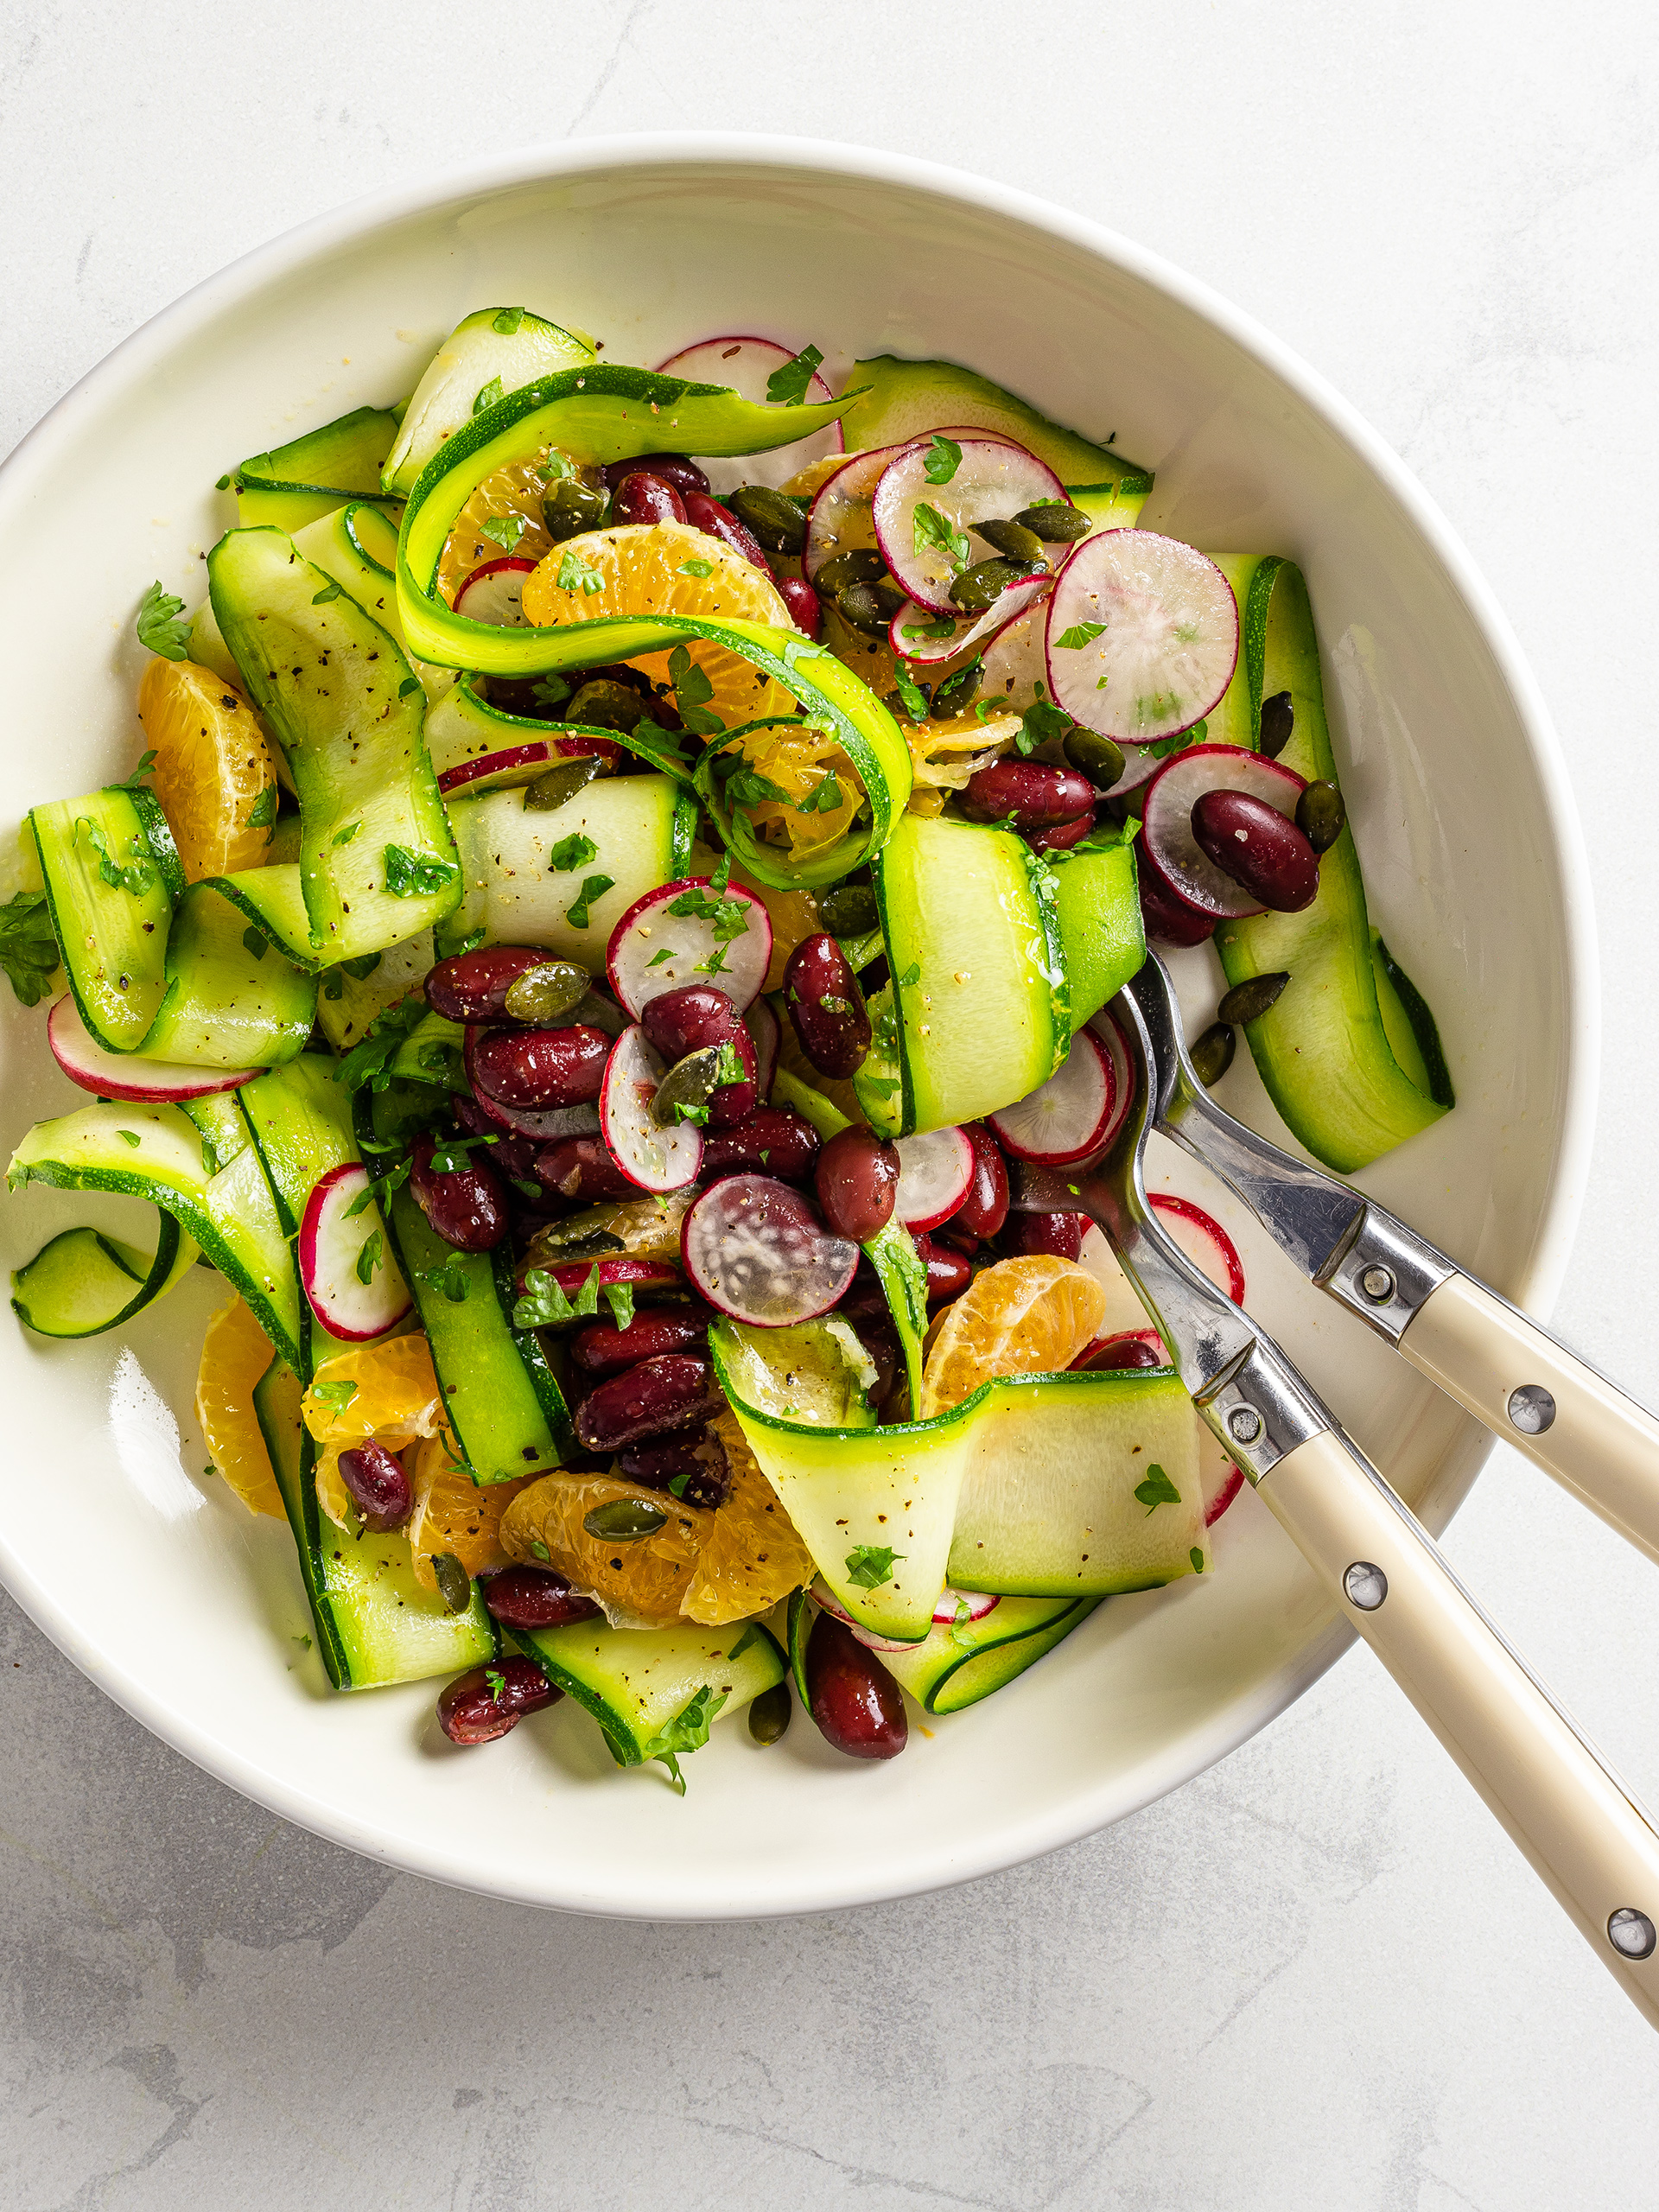 Tangerine and Zucchini Rainbow Salad Preview